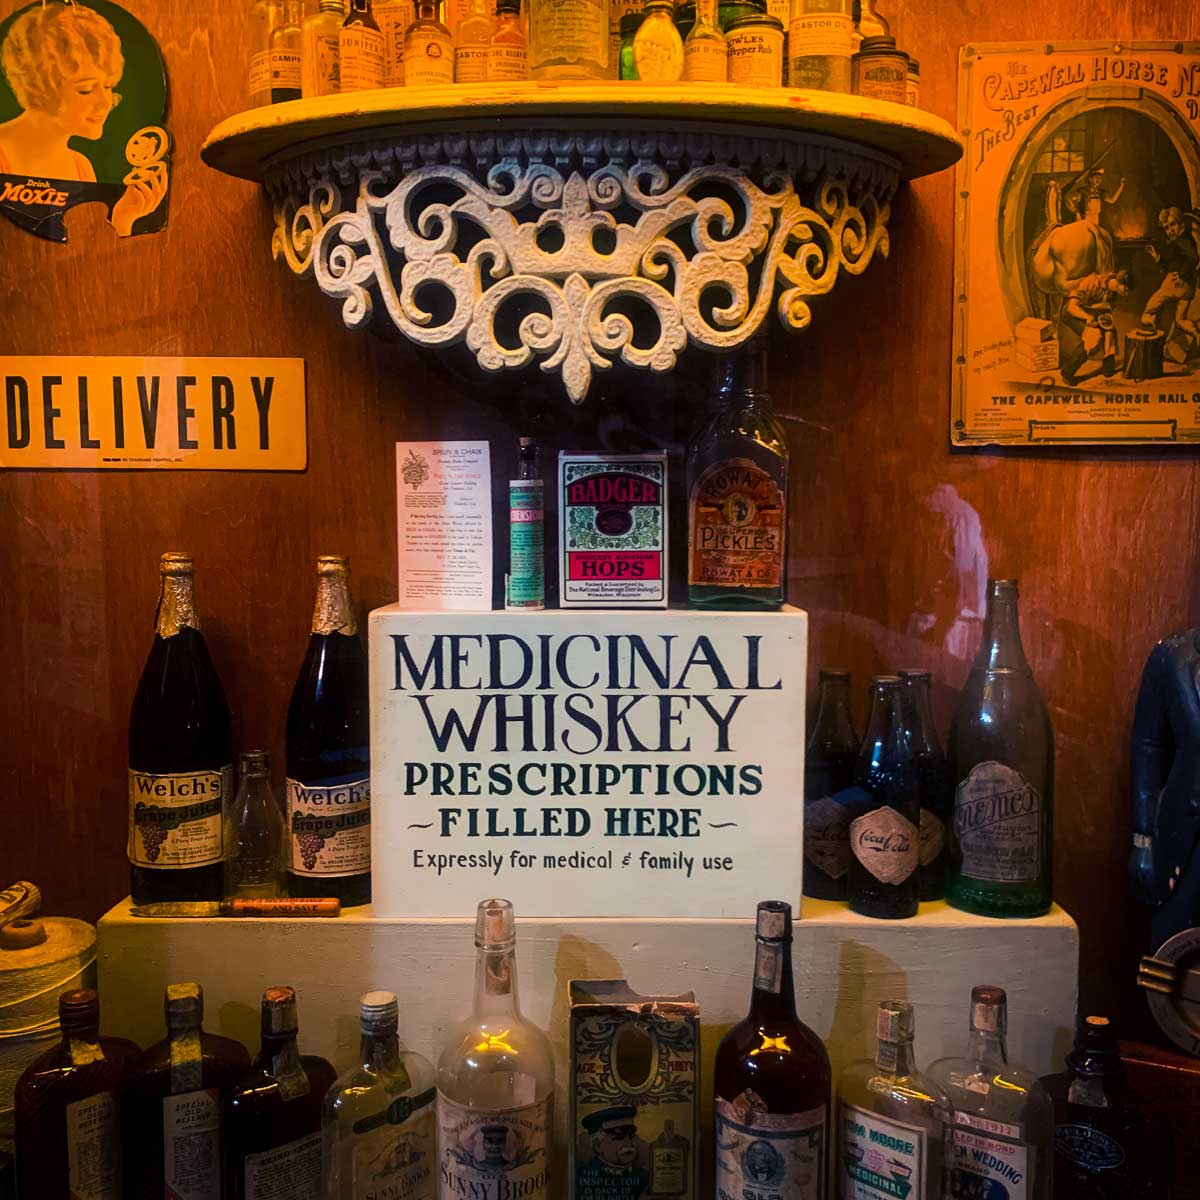 Medicinal whiskey during the Prohibition